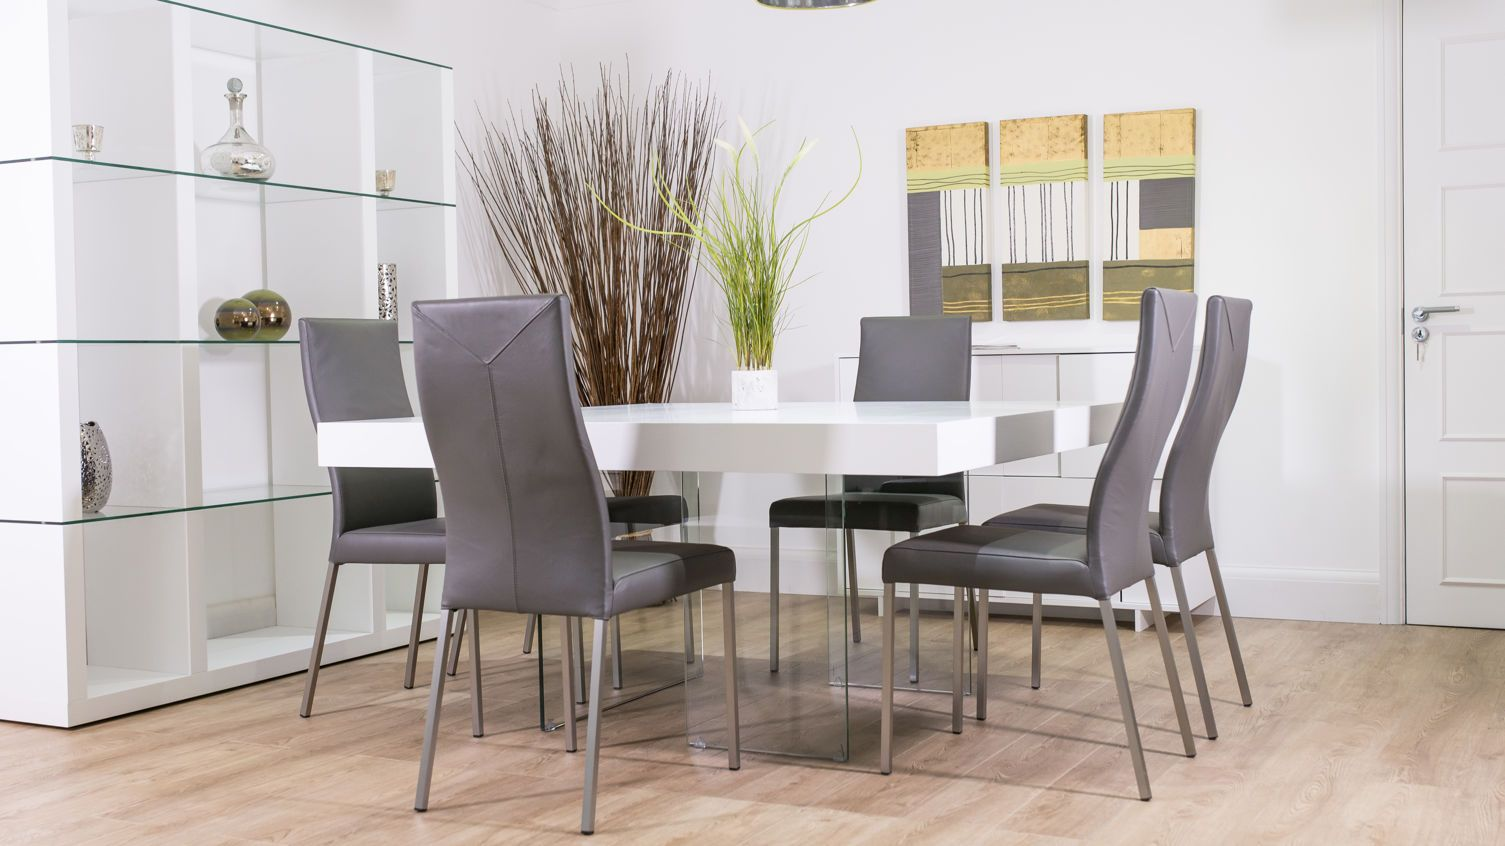 8 Seater Square White Table - Google Search